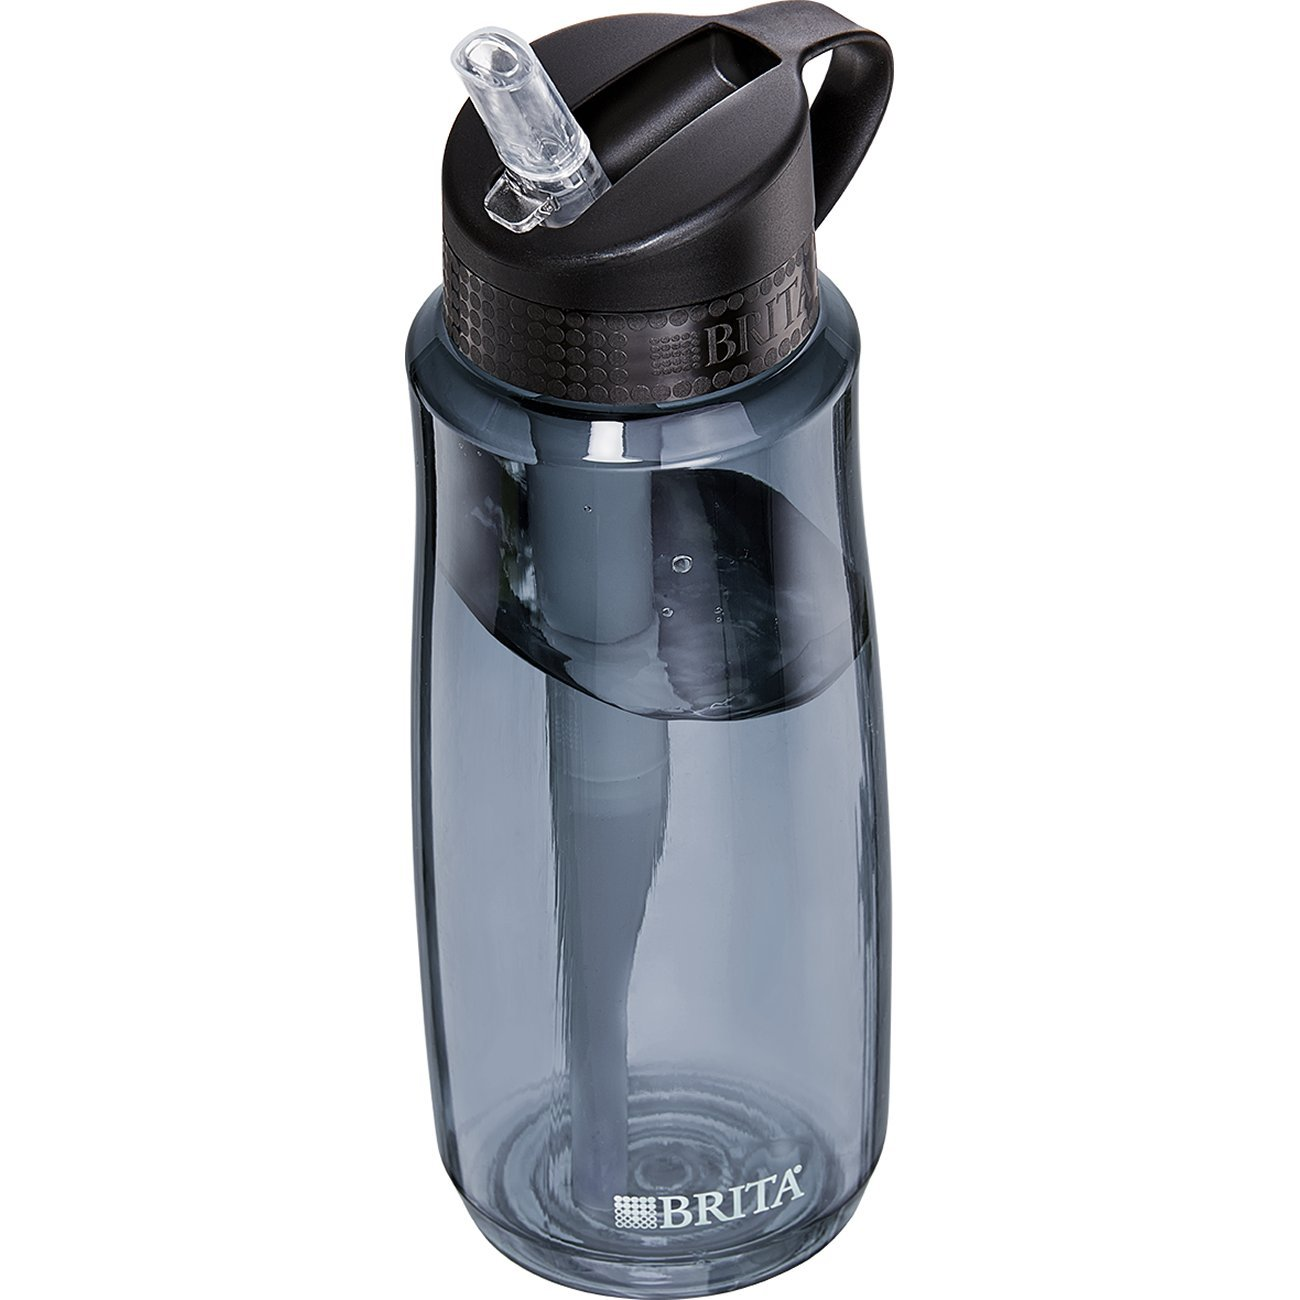 Brita 23.7 Ounce Hard Sided Water Bottle with Filter - BPA Free - Gray by Brita (Image #4)